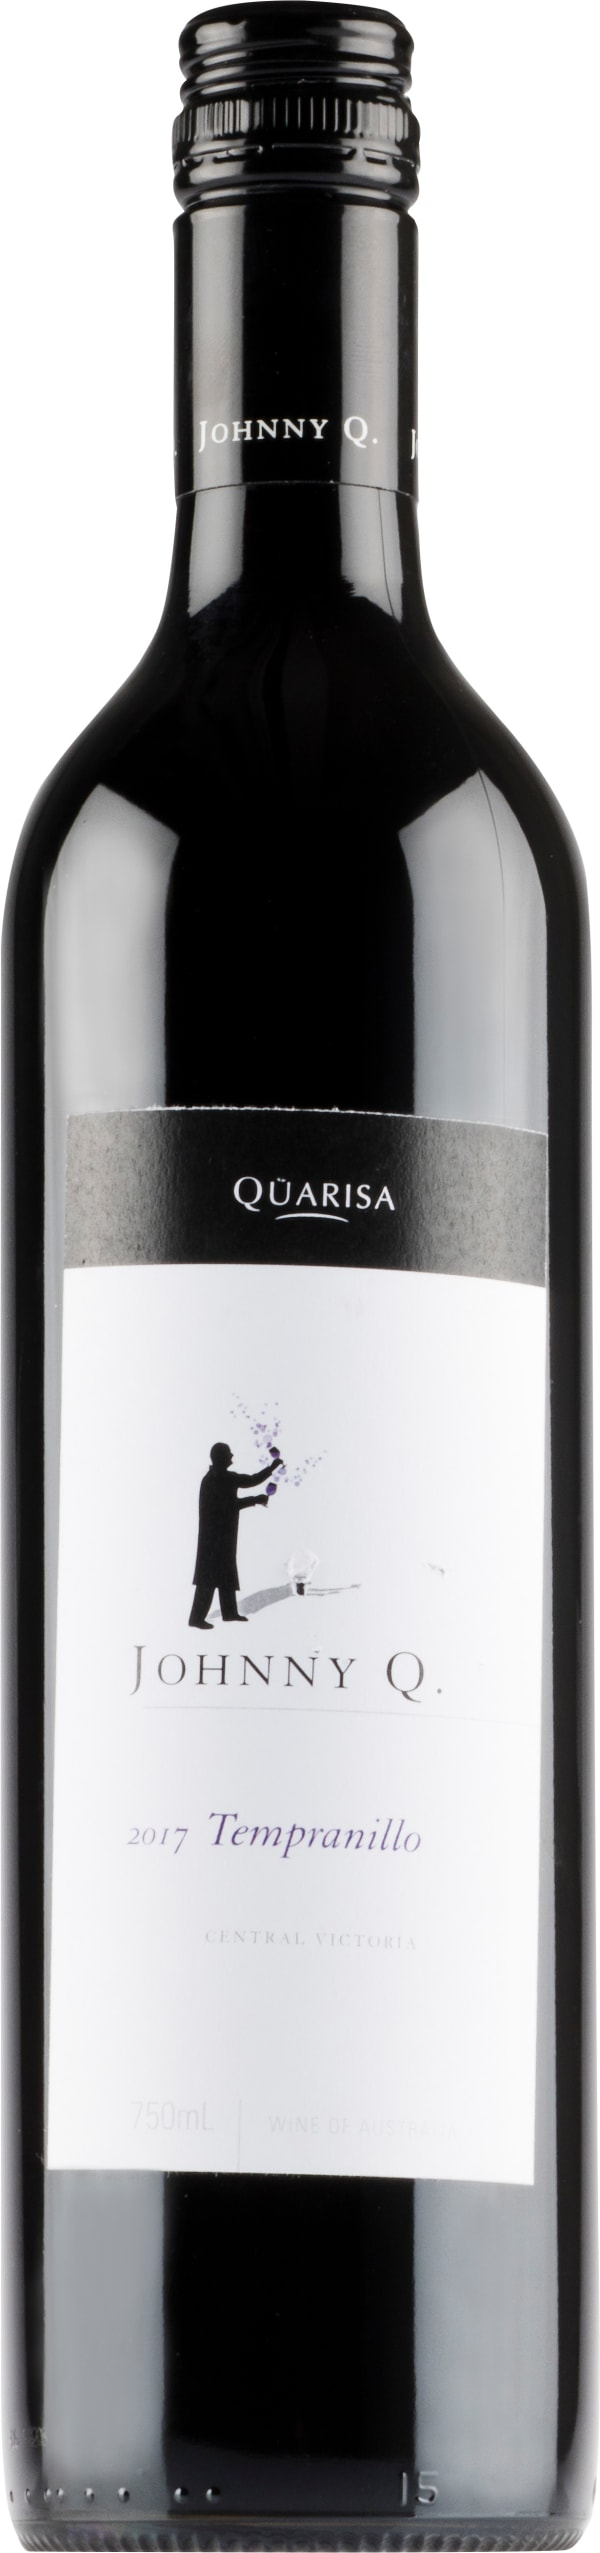 Johnny Q Tempranillo 2017